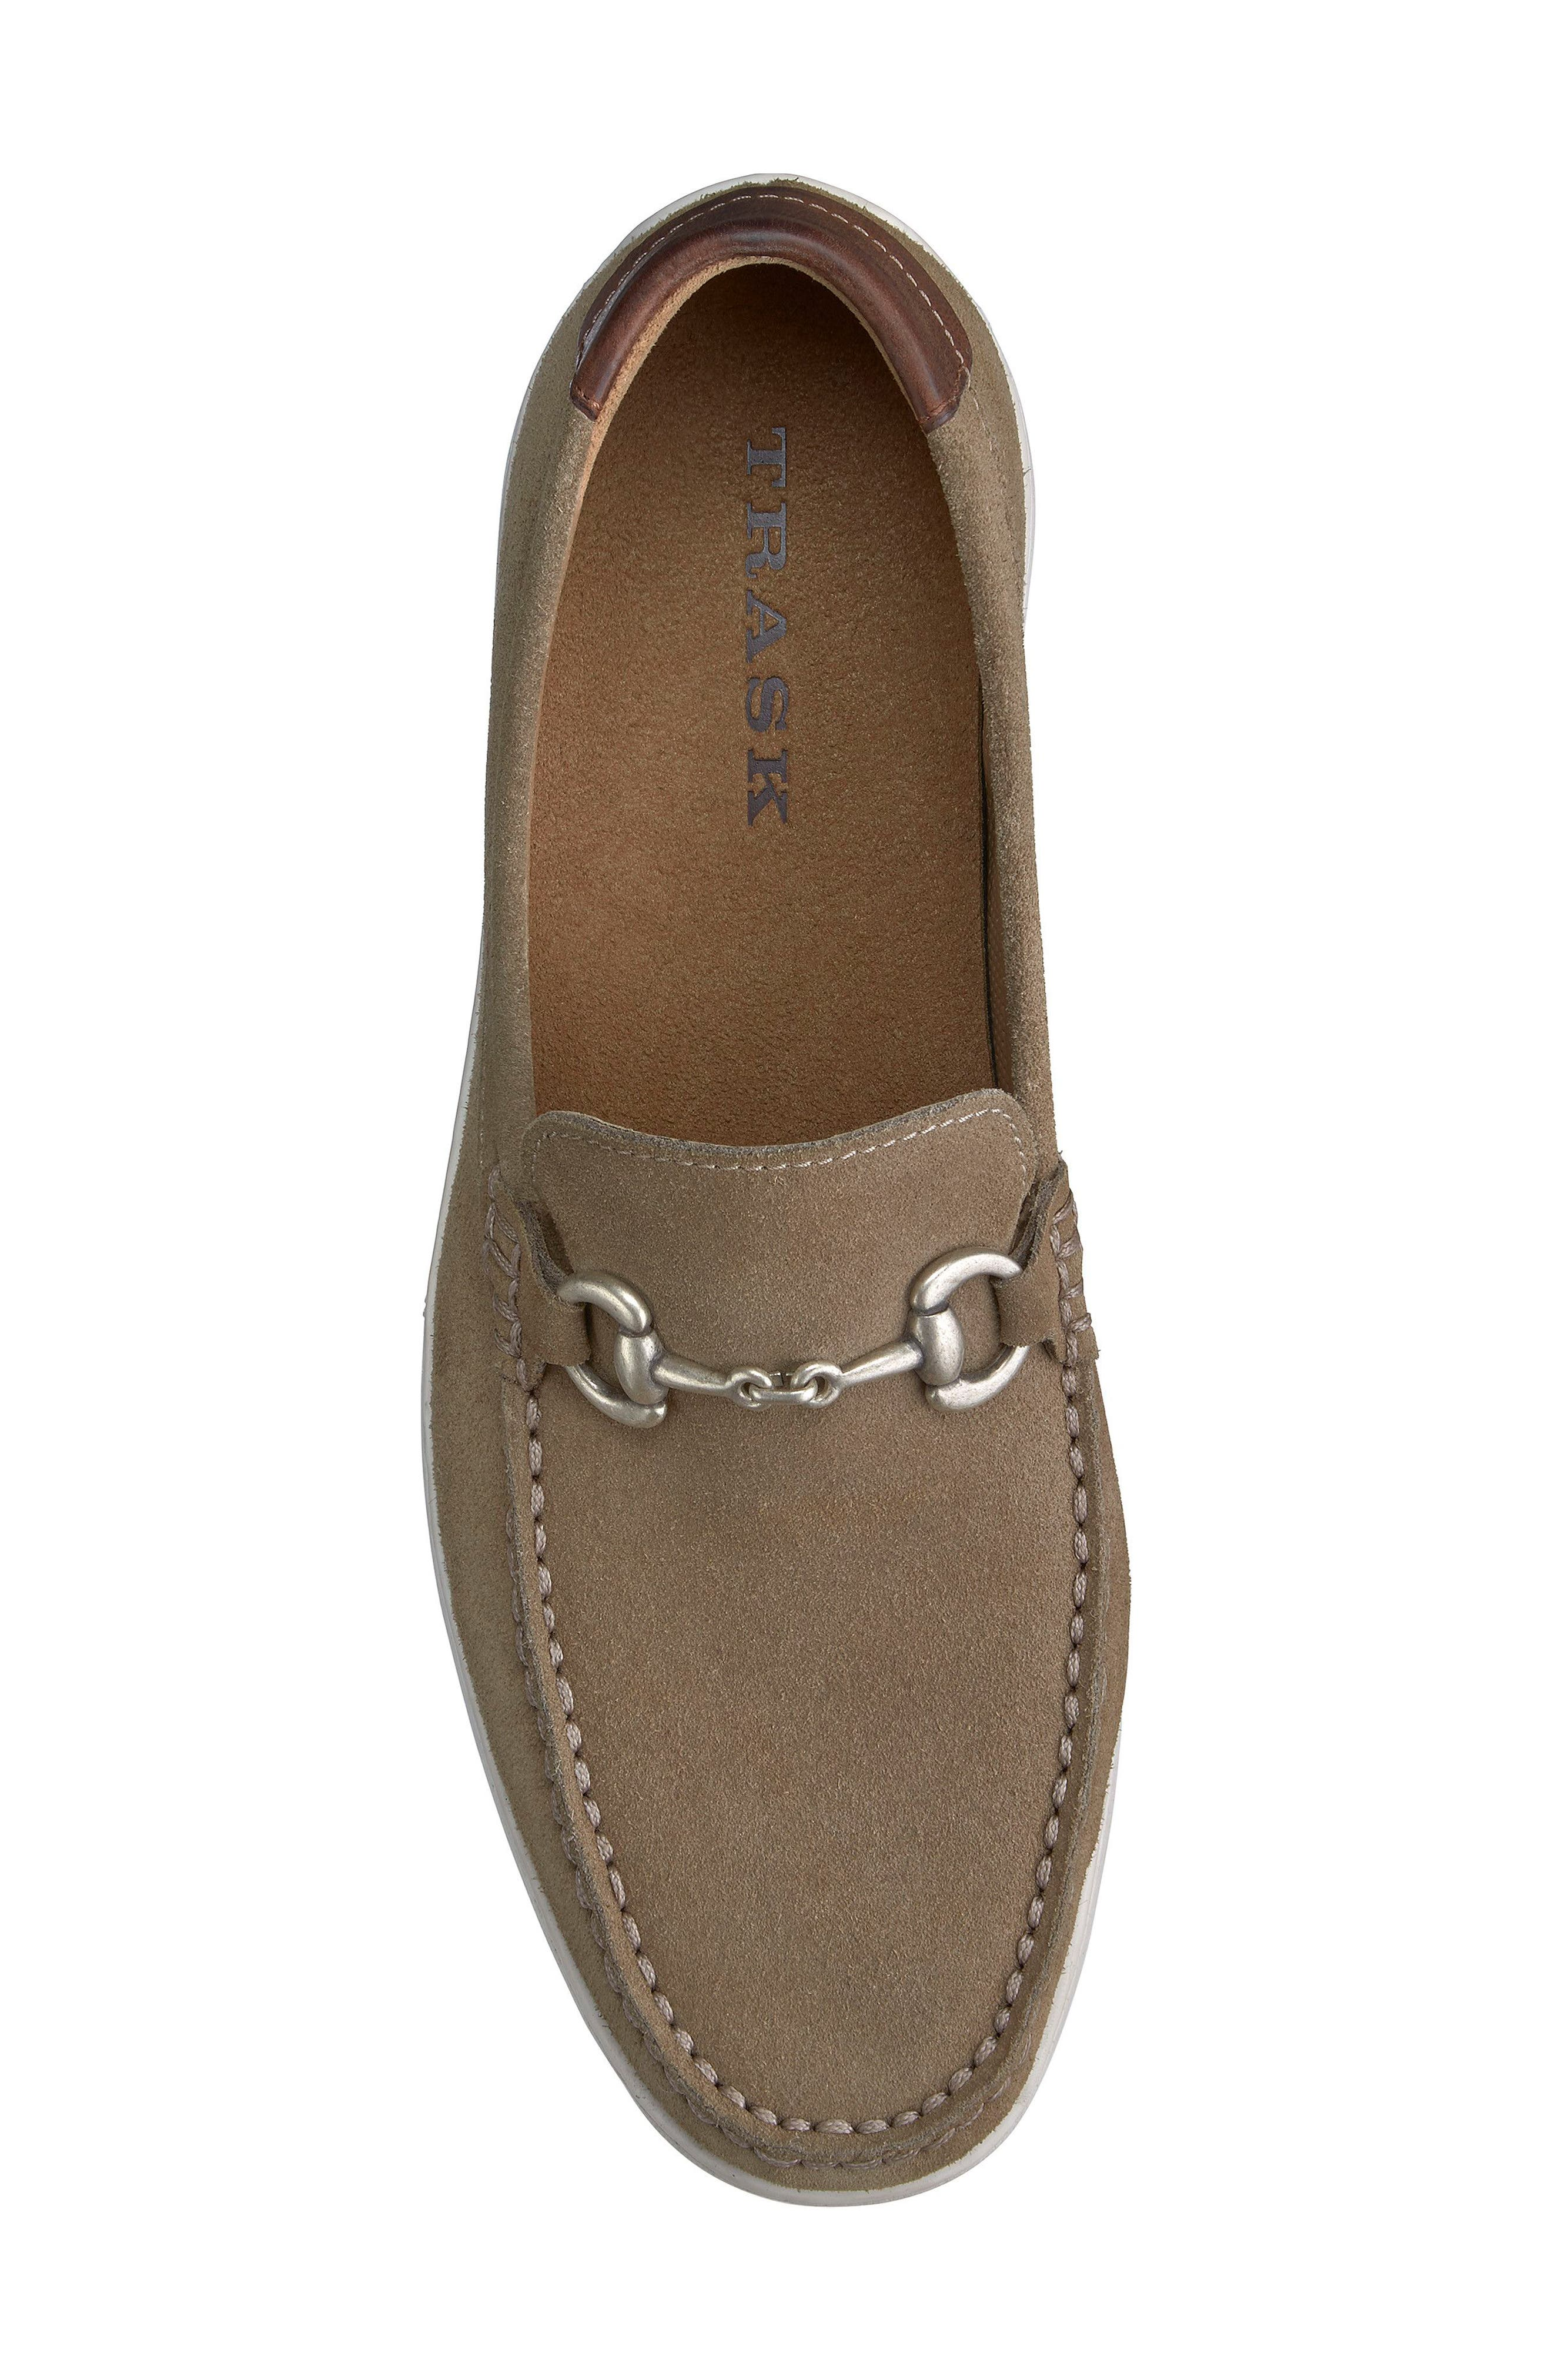 Stalworth Bit Loafer,                             Alternate thumbnail 6, color,                             Taupe Leather